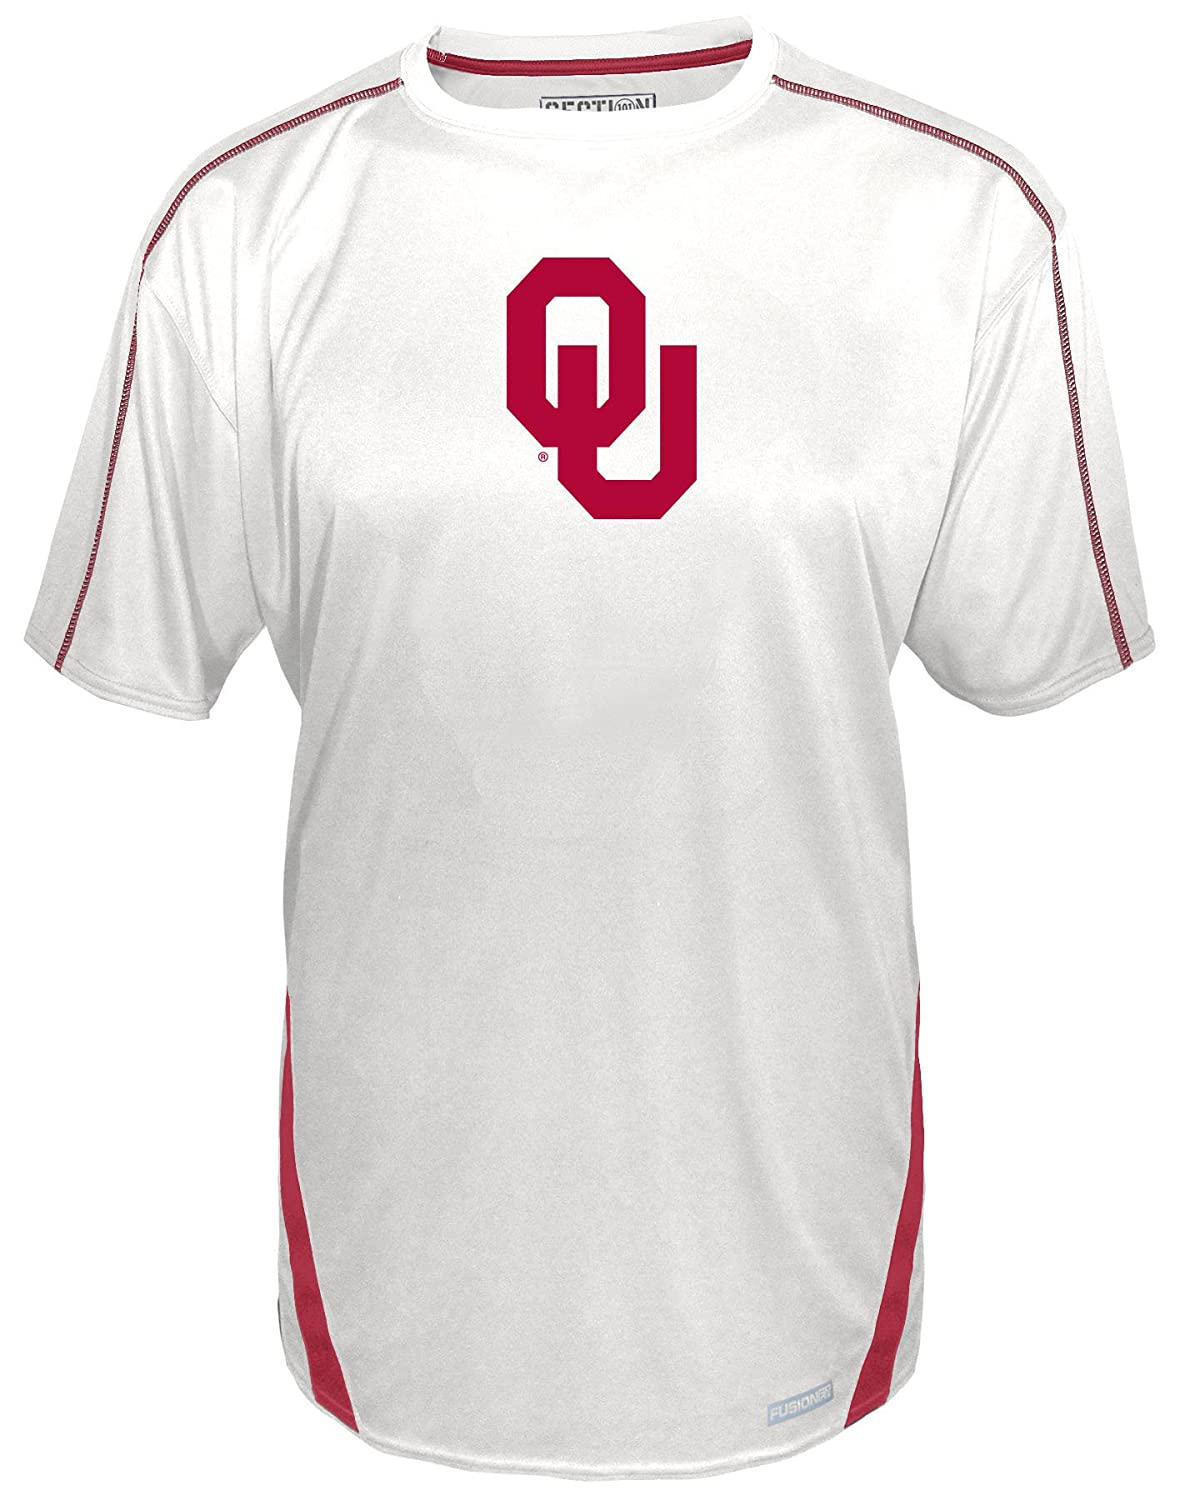 最高 NCAAメンズin Short Pursuit Short Oklahoma Sleeve NCAAメンズin Colorblocked Tee Small Oklahoma Sooners B019WTYWSK, d-ポケット:1e7428f5 --- a0267596.xsph.ru